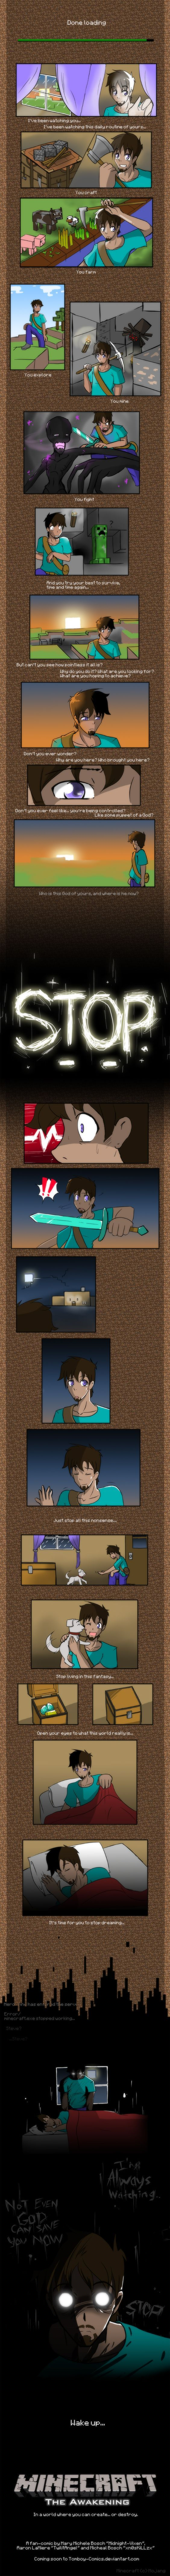 Minecraft Comic of the legend of HEROBRINE: